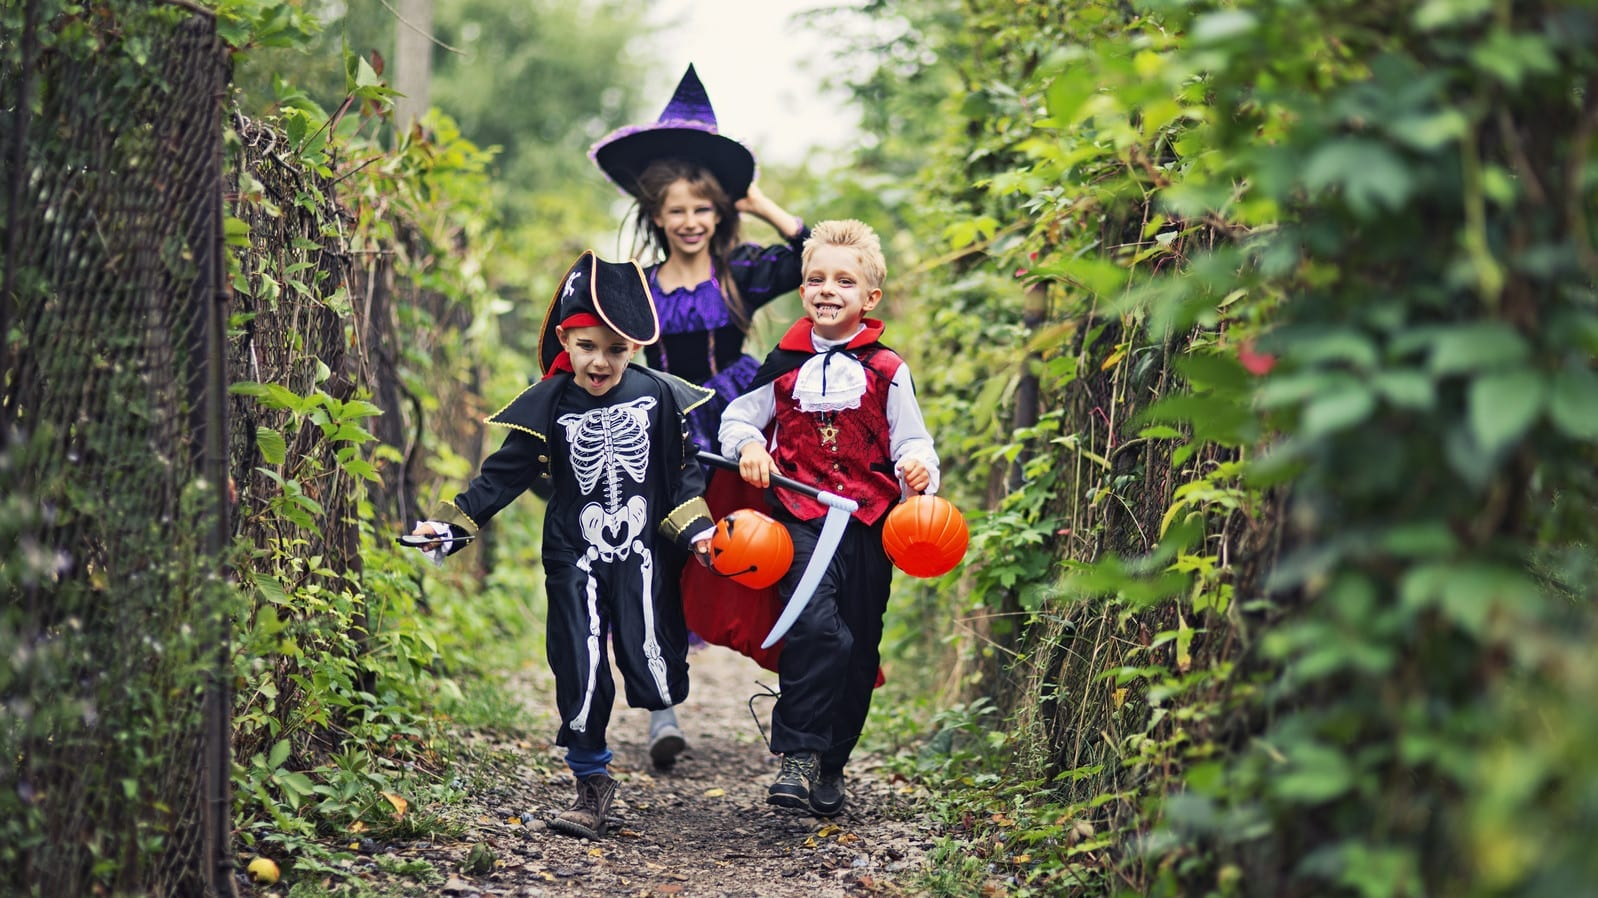 Small Children Trick Or Treating At Halloween Stock Photo